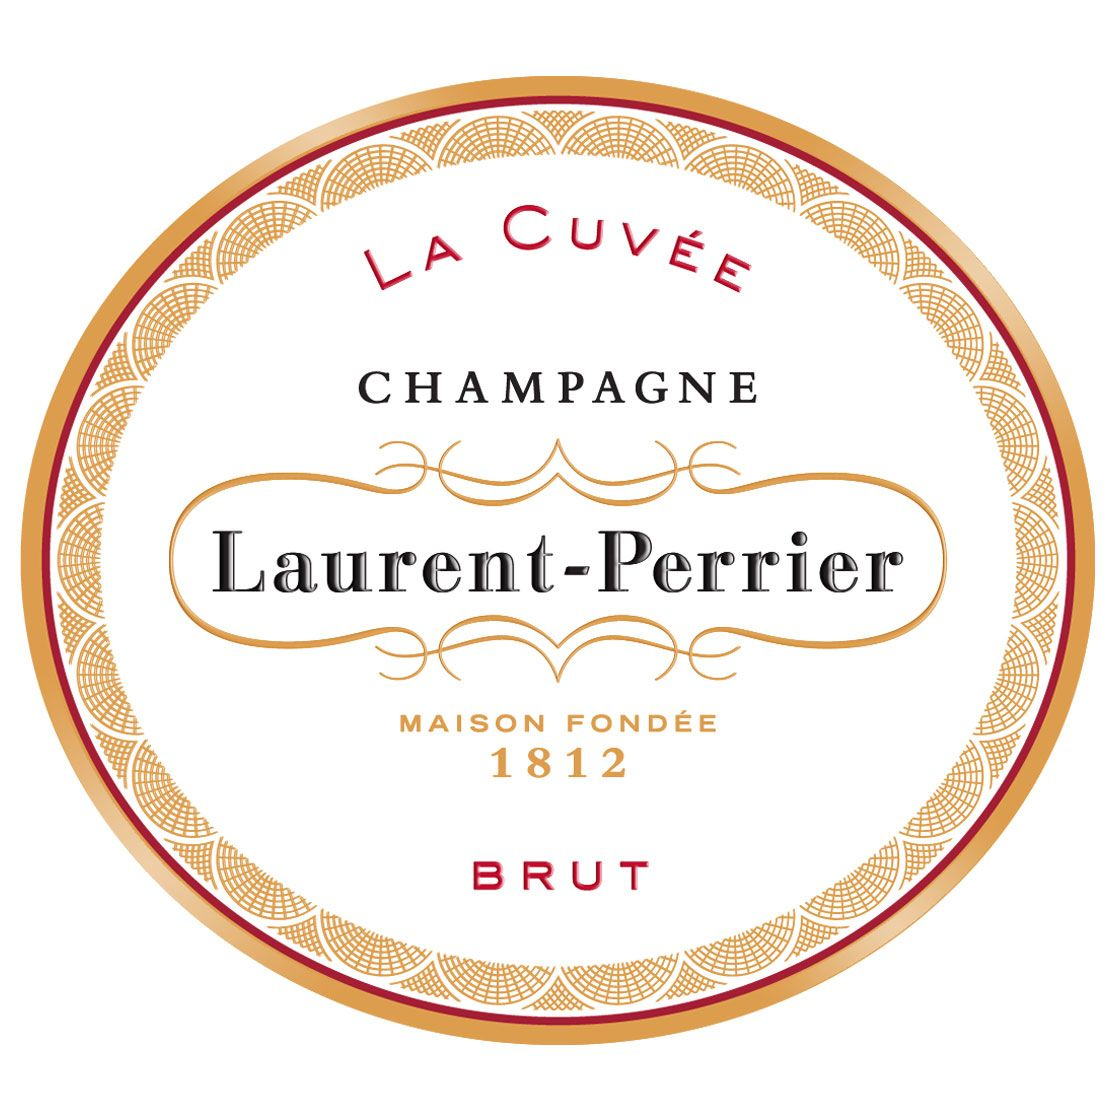 Laurent-Perrier La Cuvee Brut (3 Liter Bottle - Jeroboam) Front Label